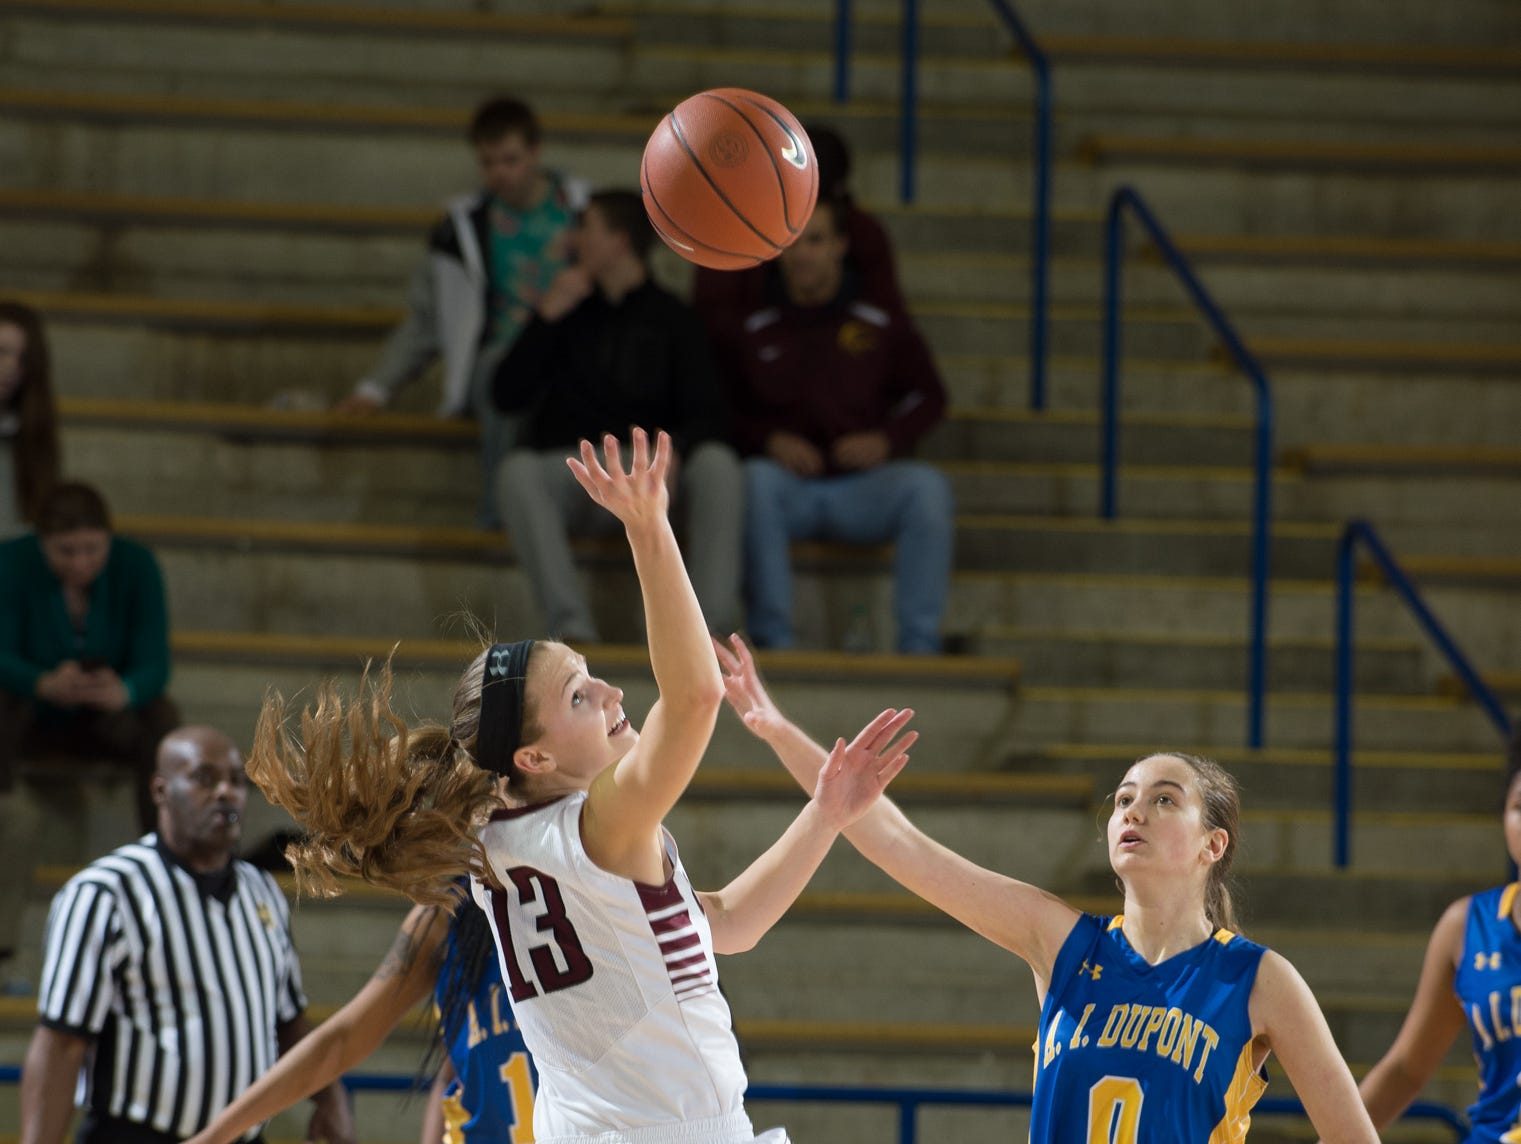 Caravel's Grace Lange (13) reaches for the ball in the quarterfinals of DIAA Girls Basketball Tournament at the University of Delaware against A.I. duPont.